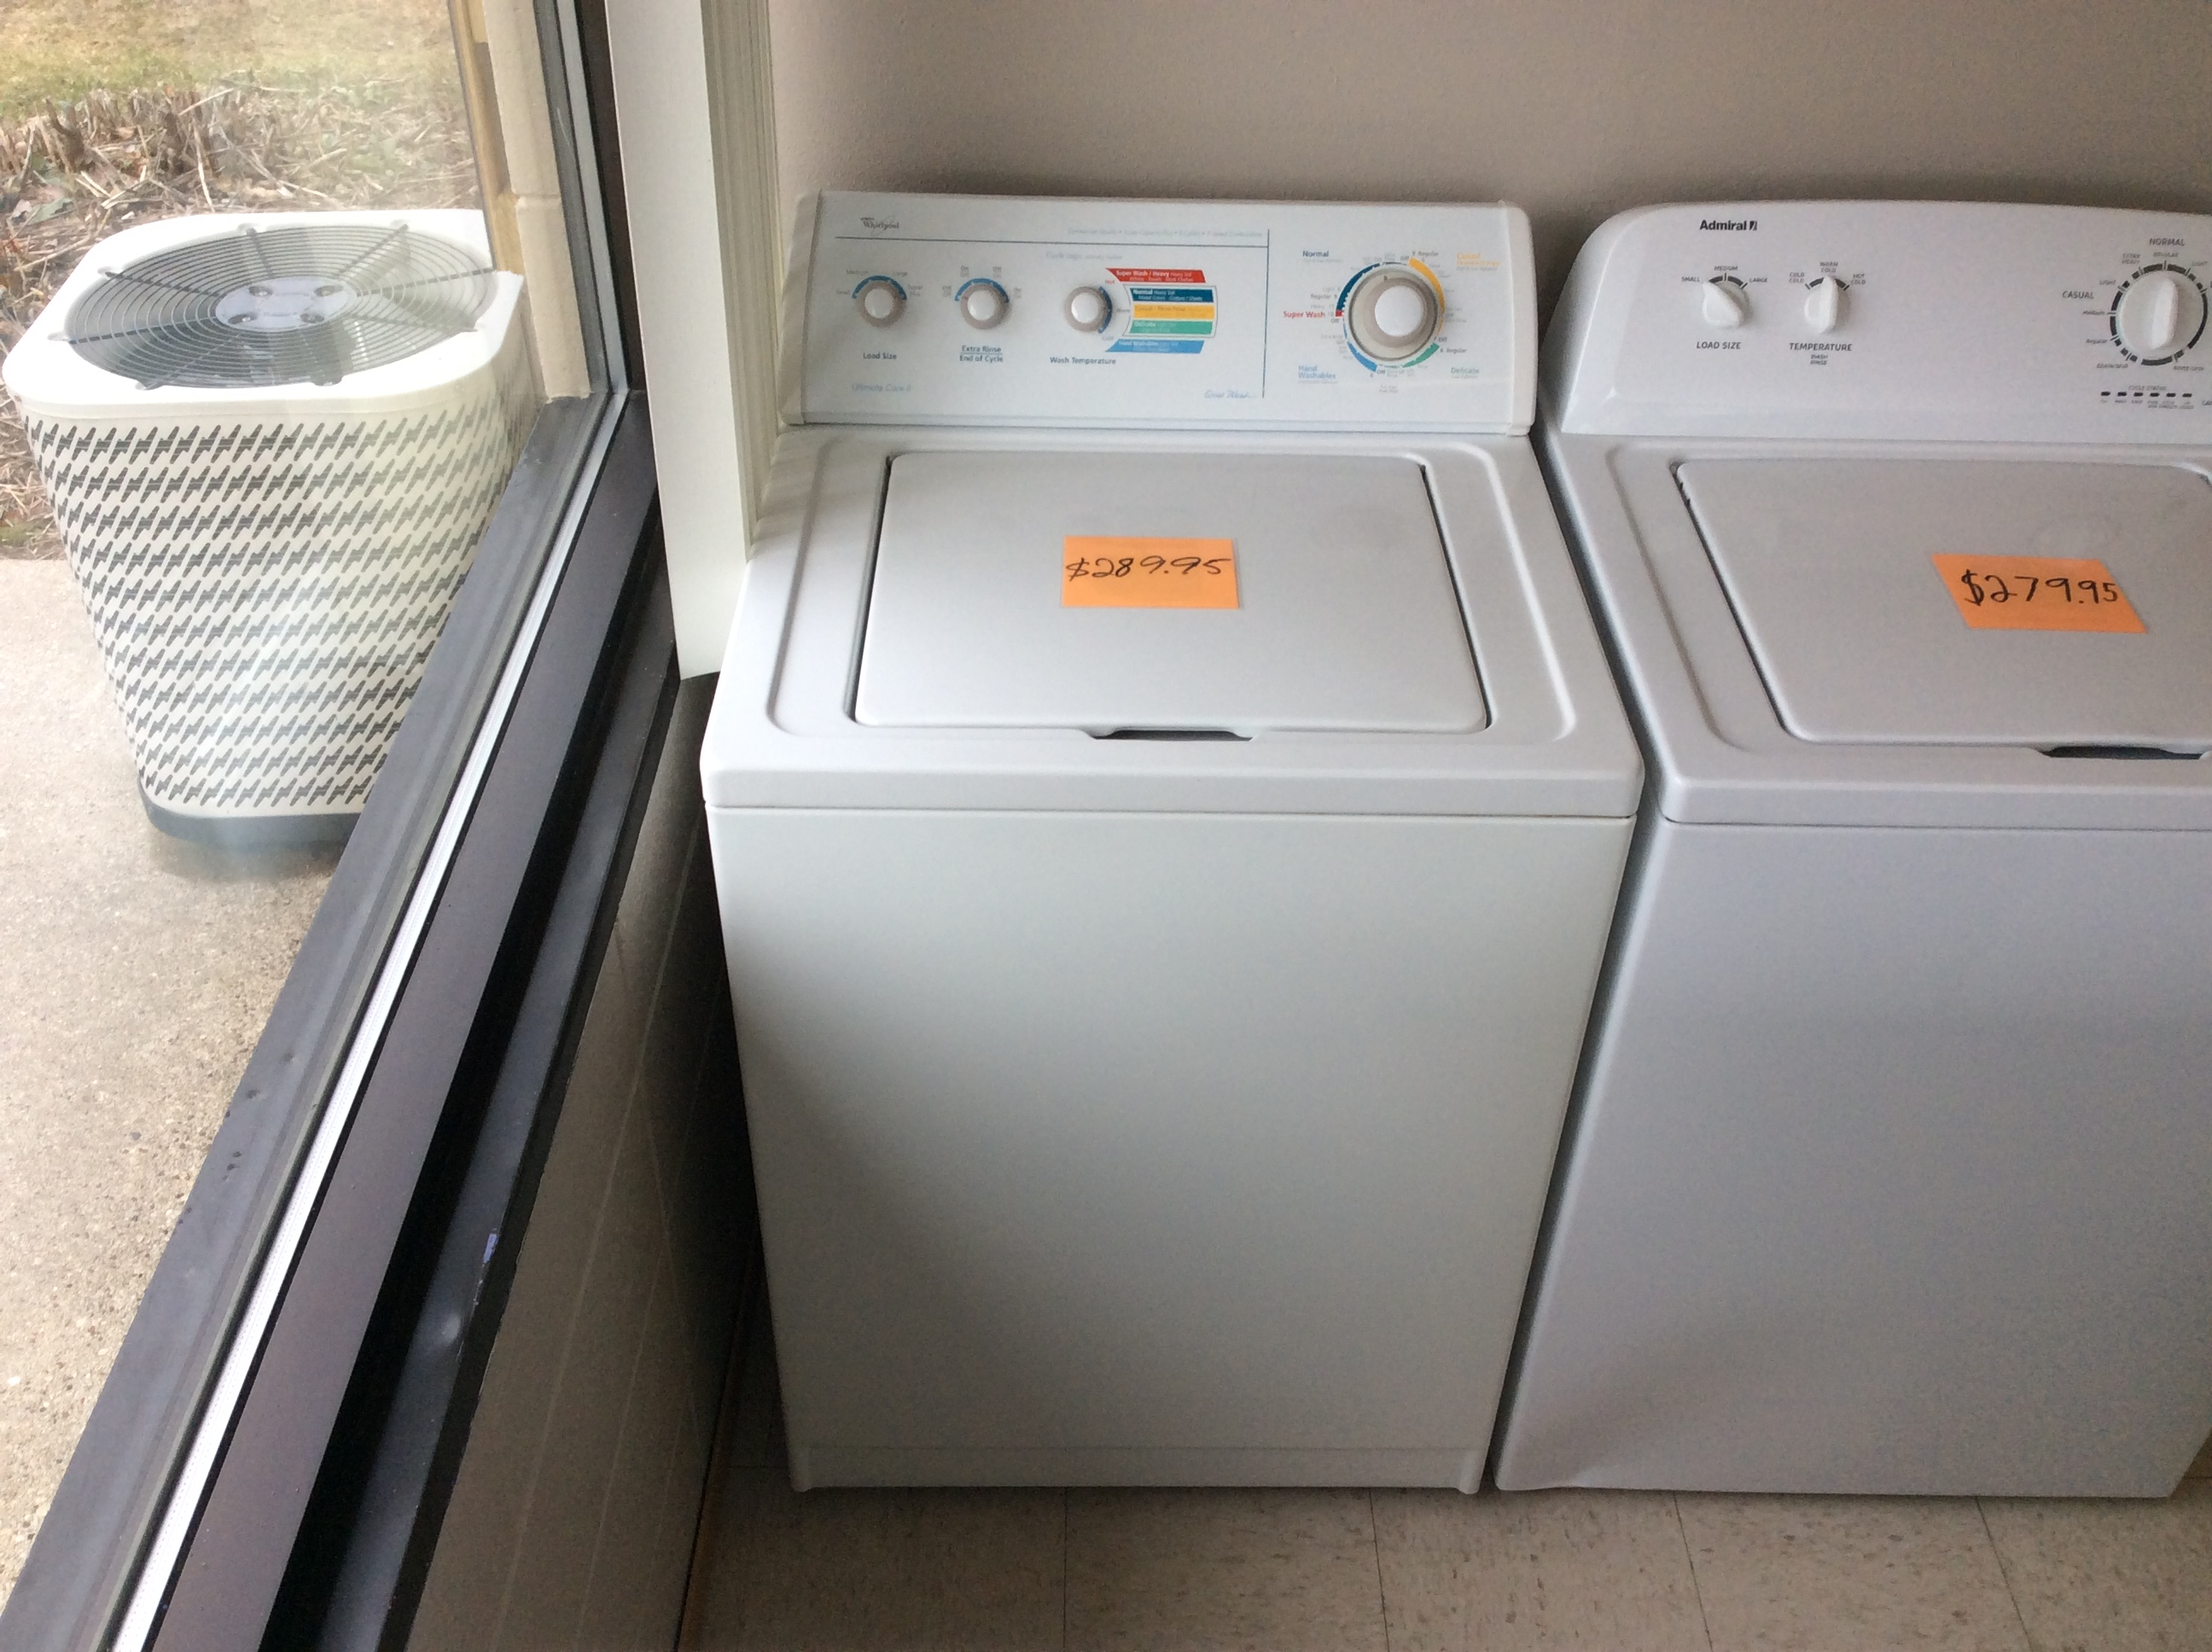 Whirlpool Ultimate Care 2 Top Load Washer Kelbachs